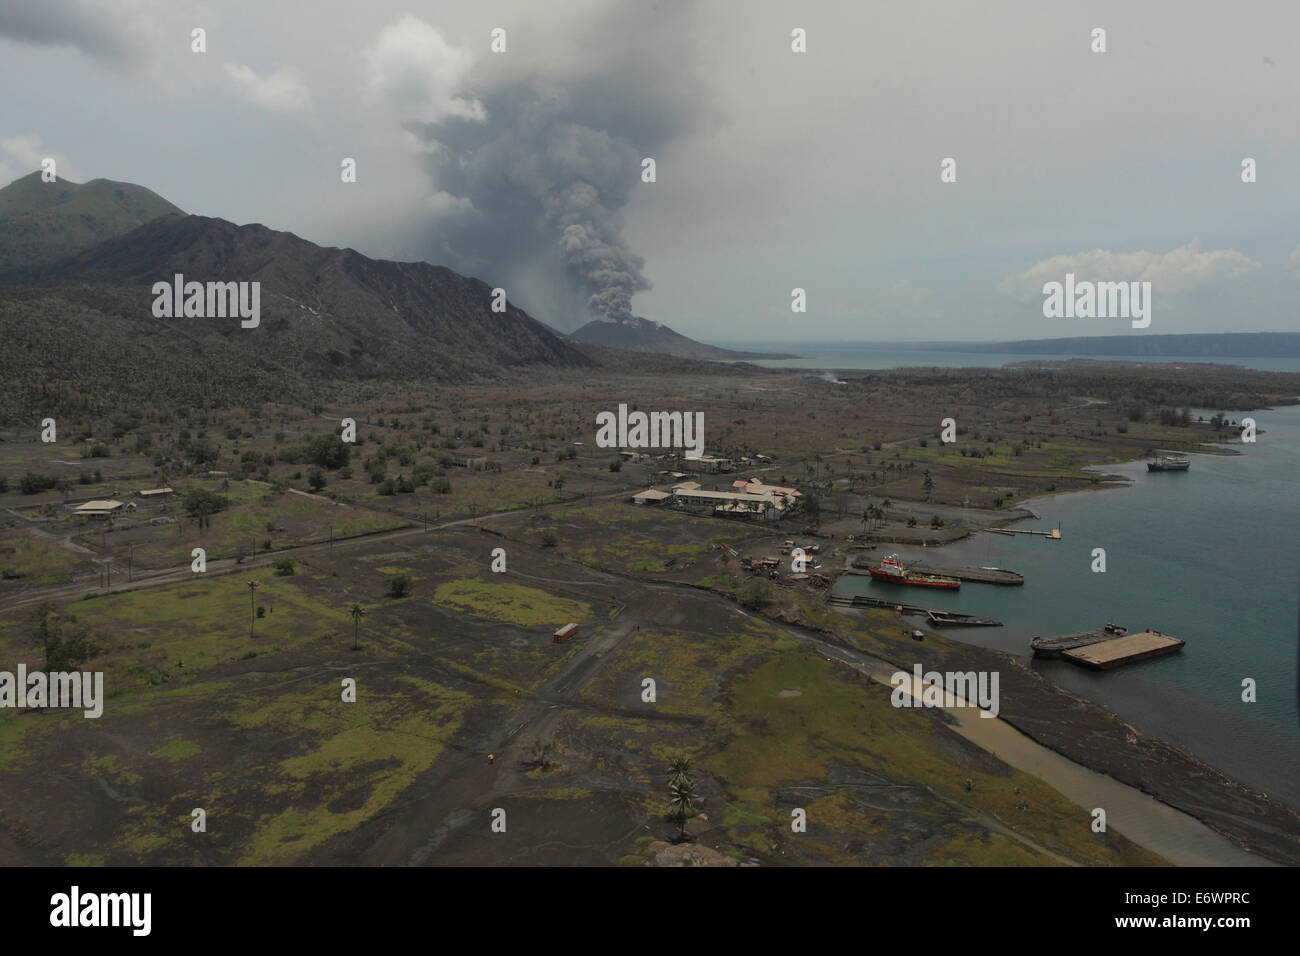 Tavurvur volcano and surroundings, Tavurvur Volcano, Rabaul, East New Britain, Papua New Guinea, Pacific - Stock Image